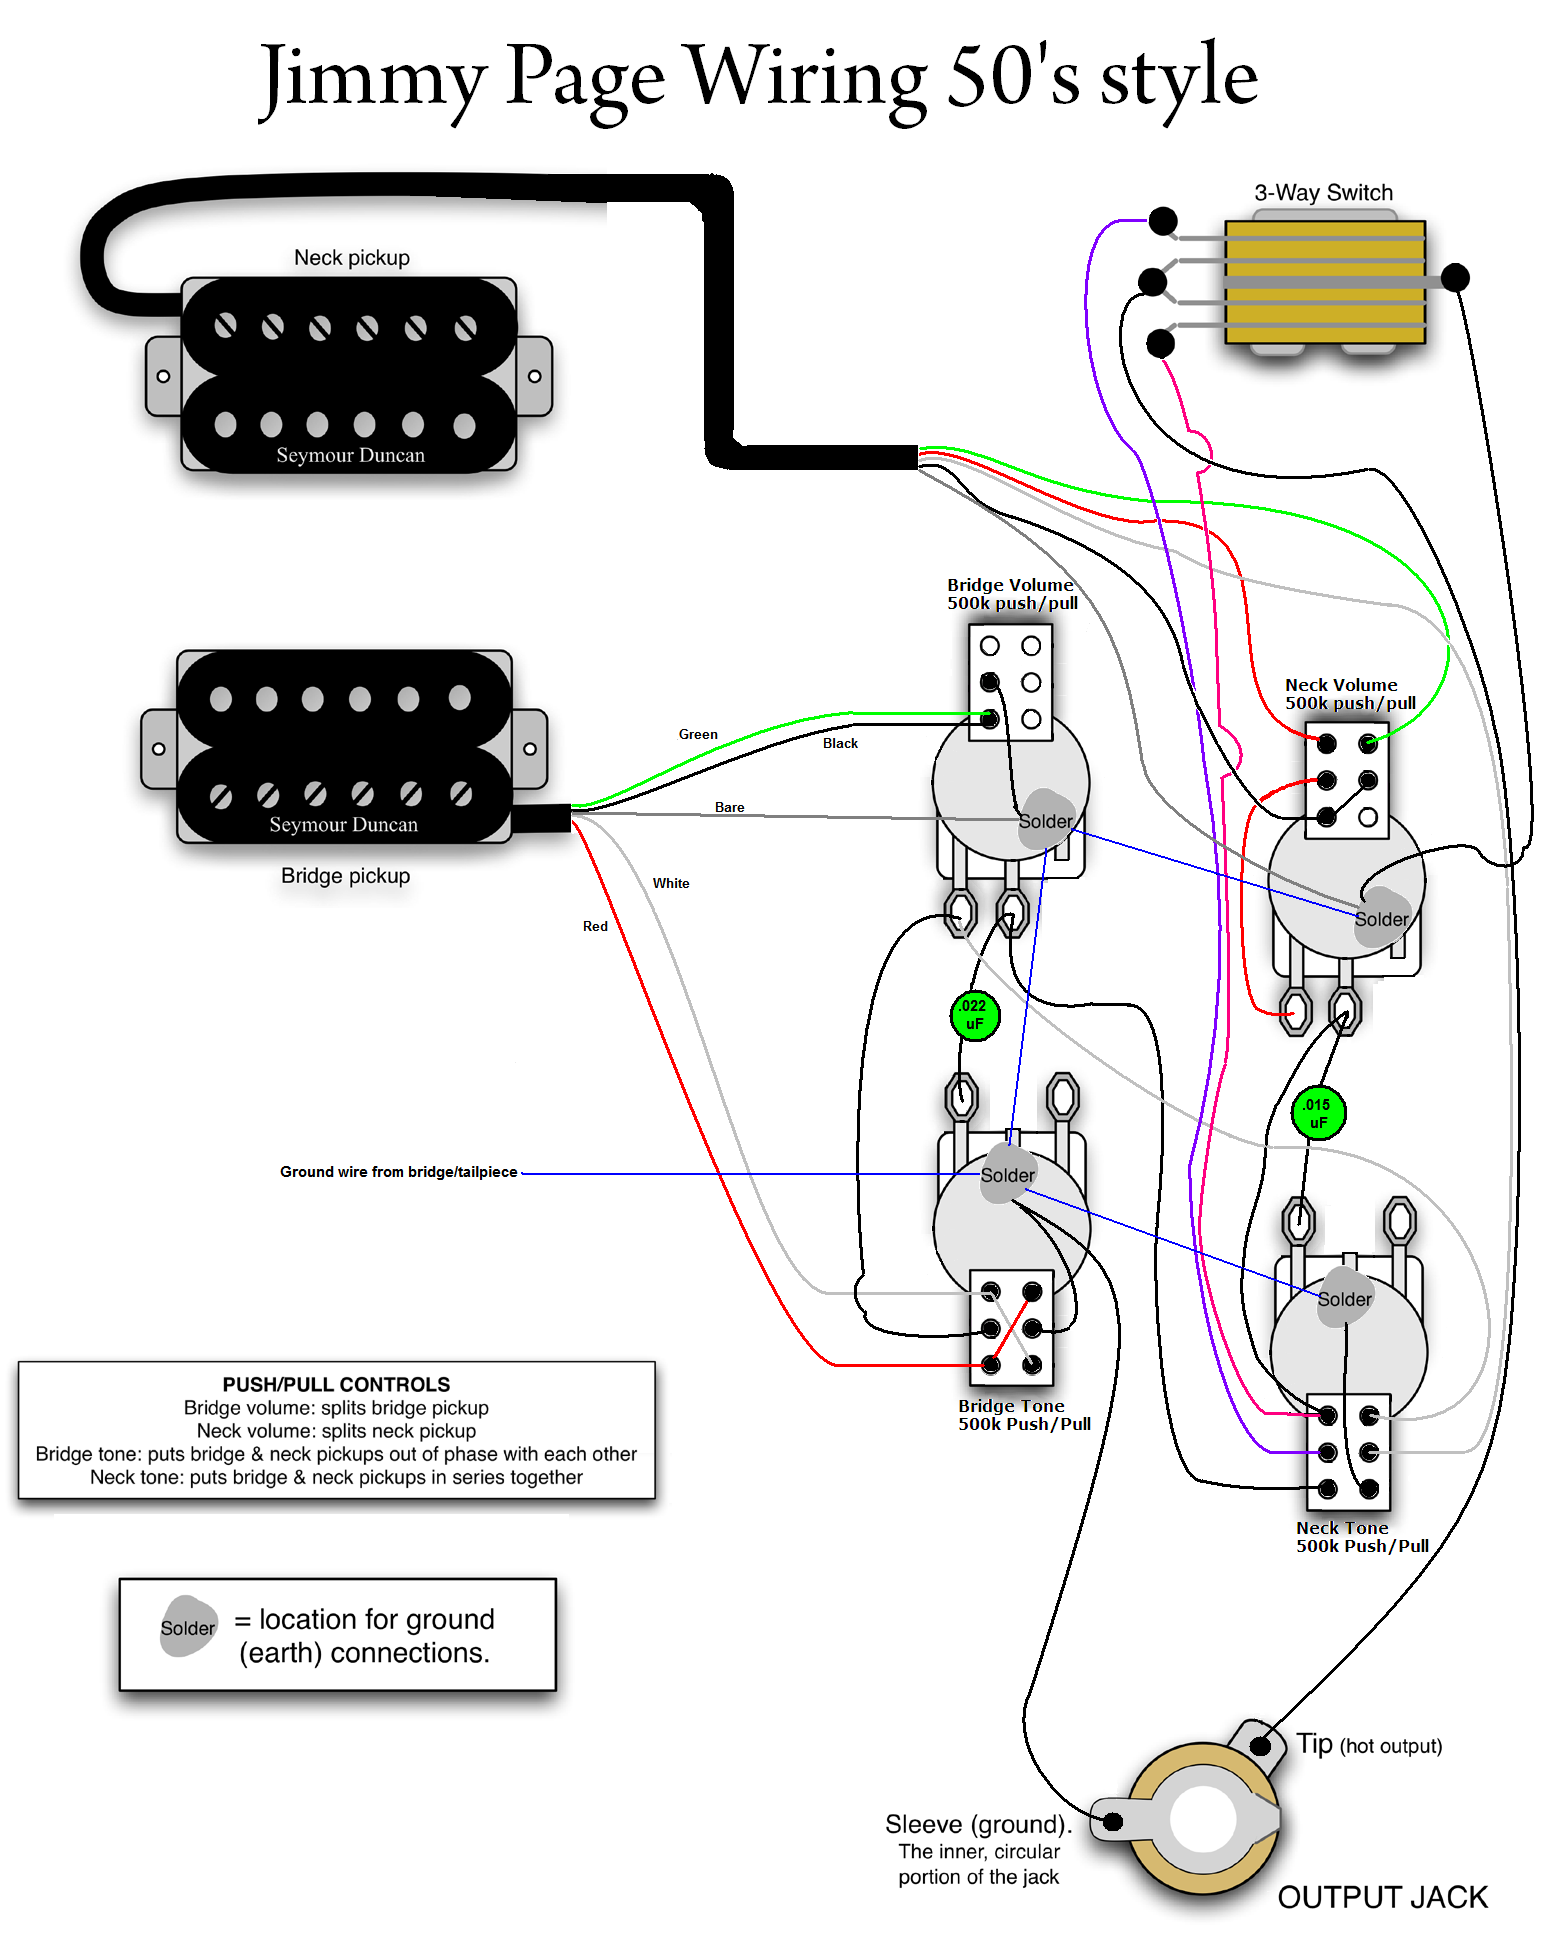 medium resolution of jimmy page les paul wiring diagram wiring diagrams loljimmy page 50s wiring mylespaul com instruments in